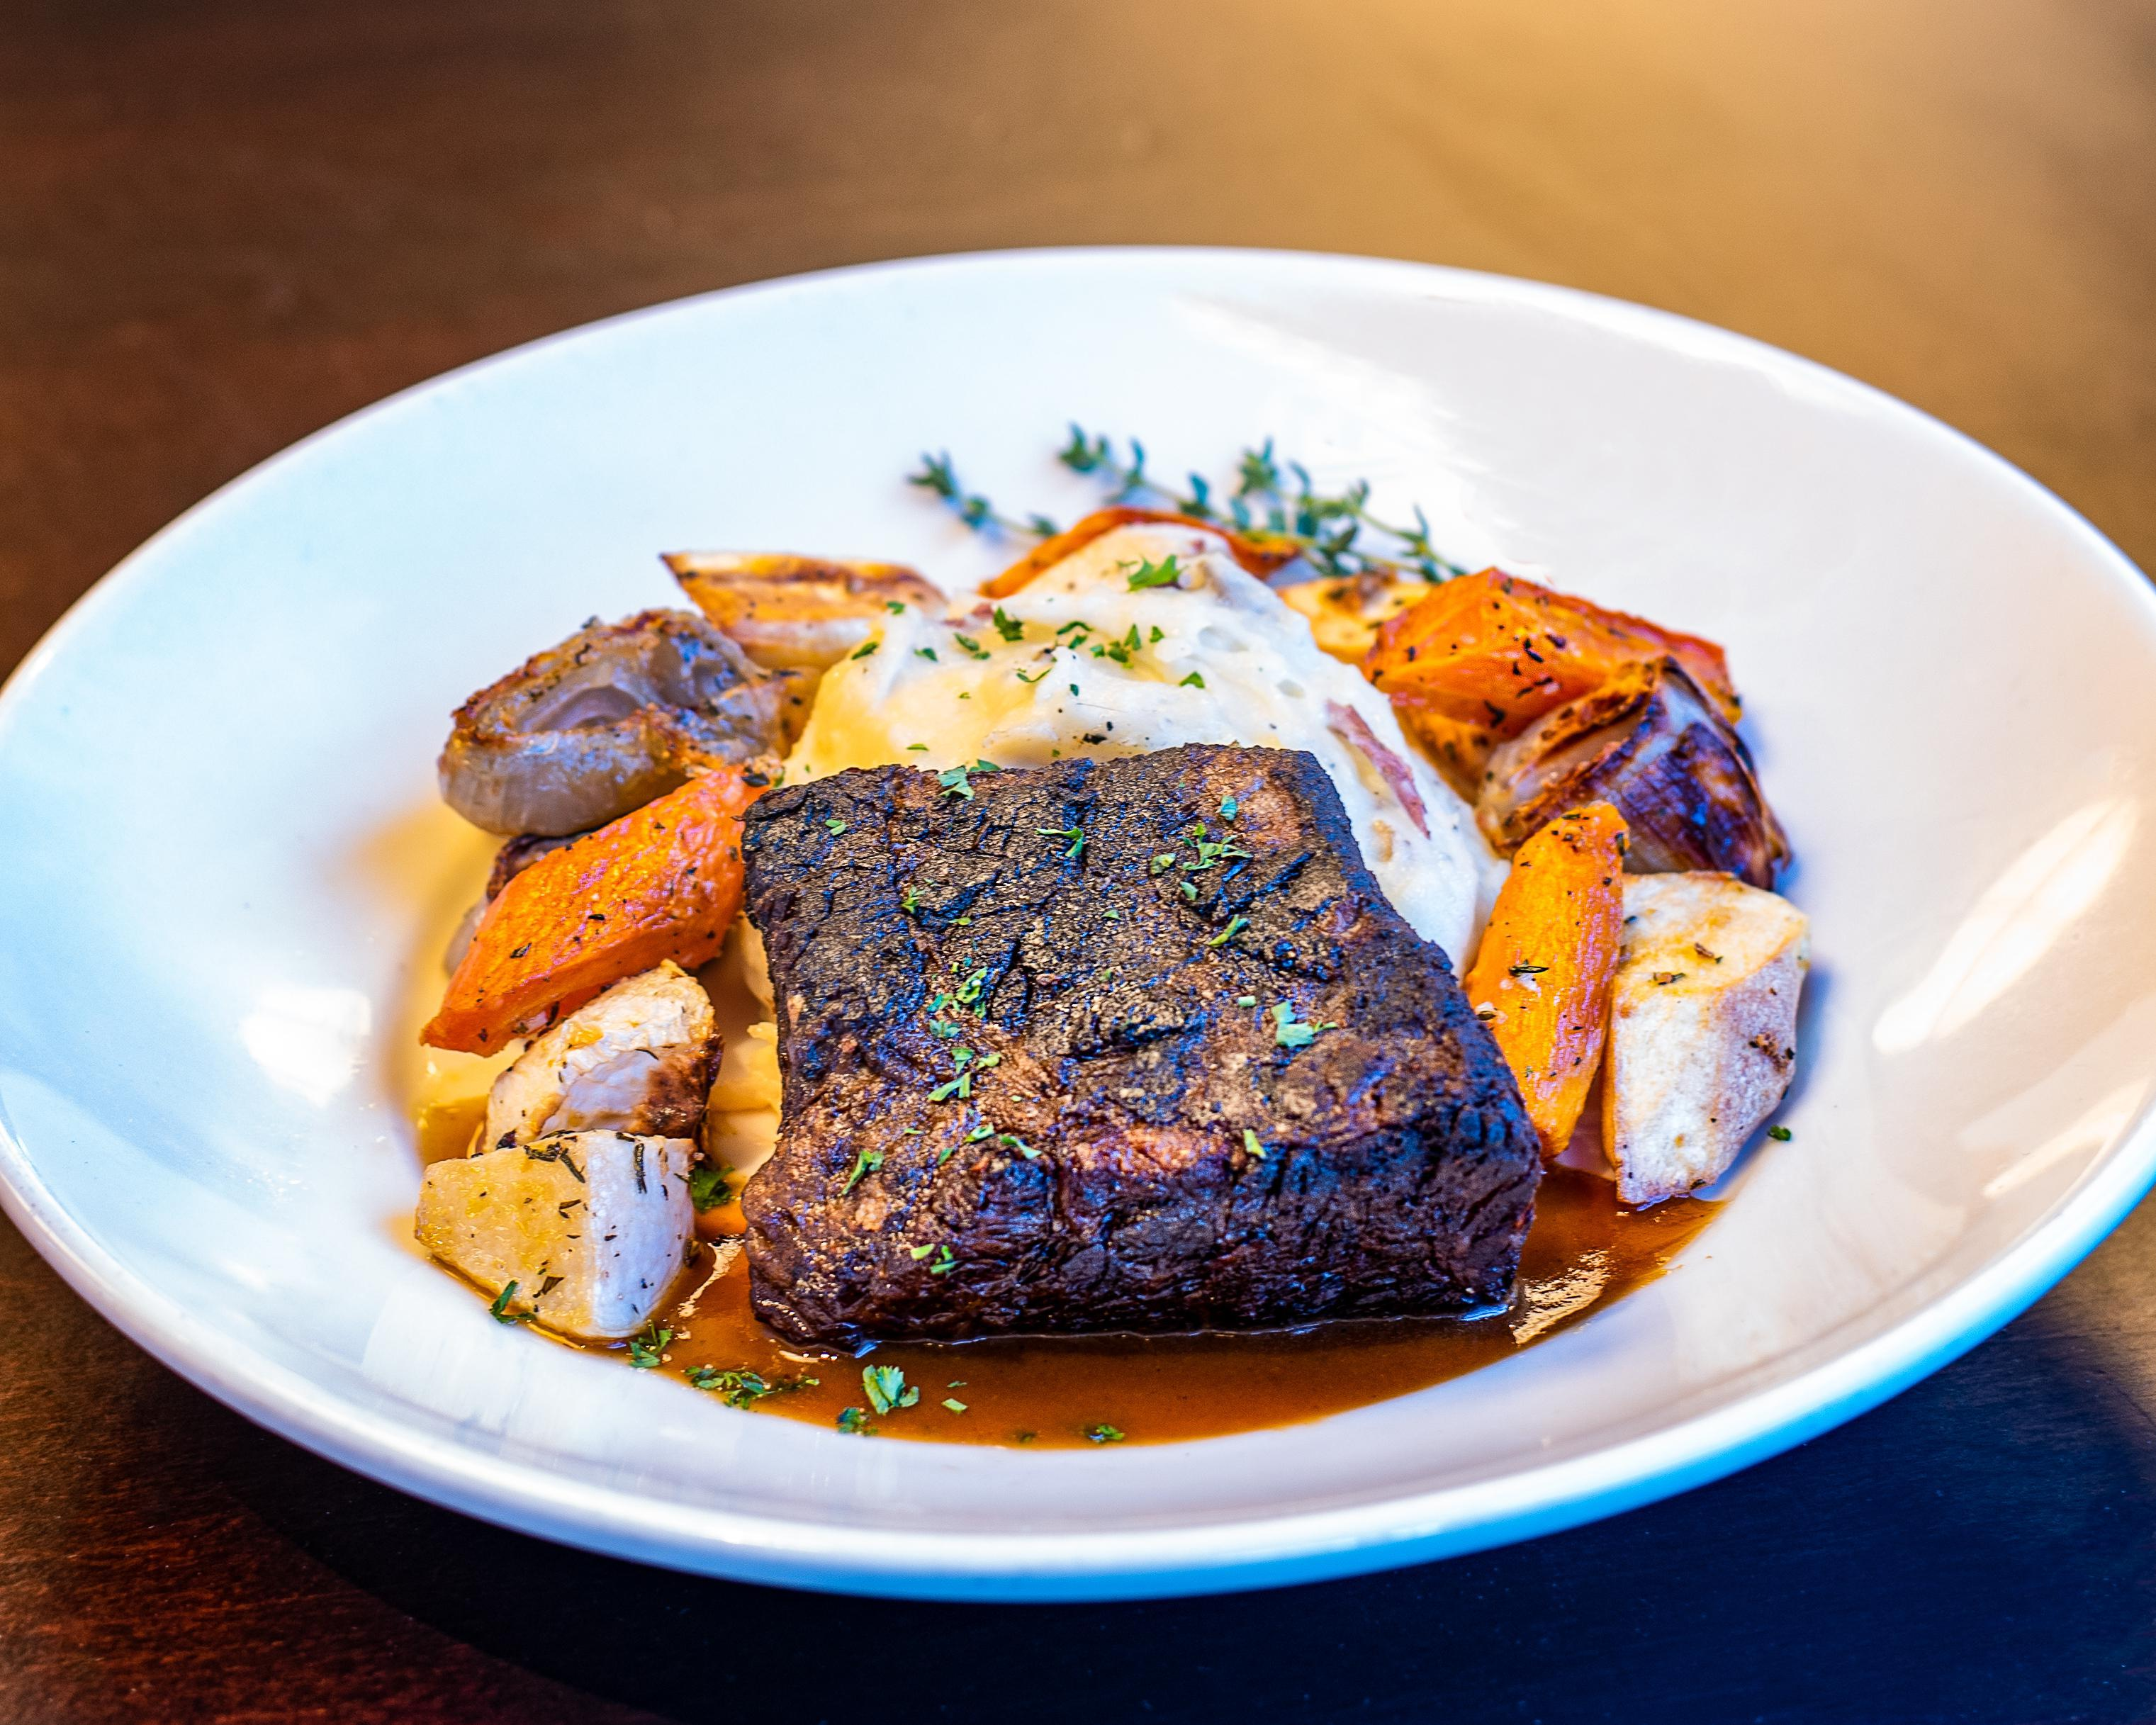 Thursday: Beer-Braised Short Ribs